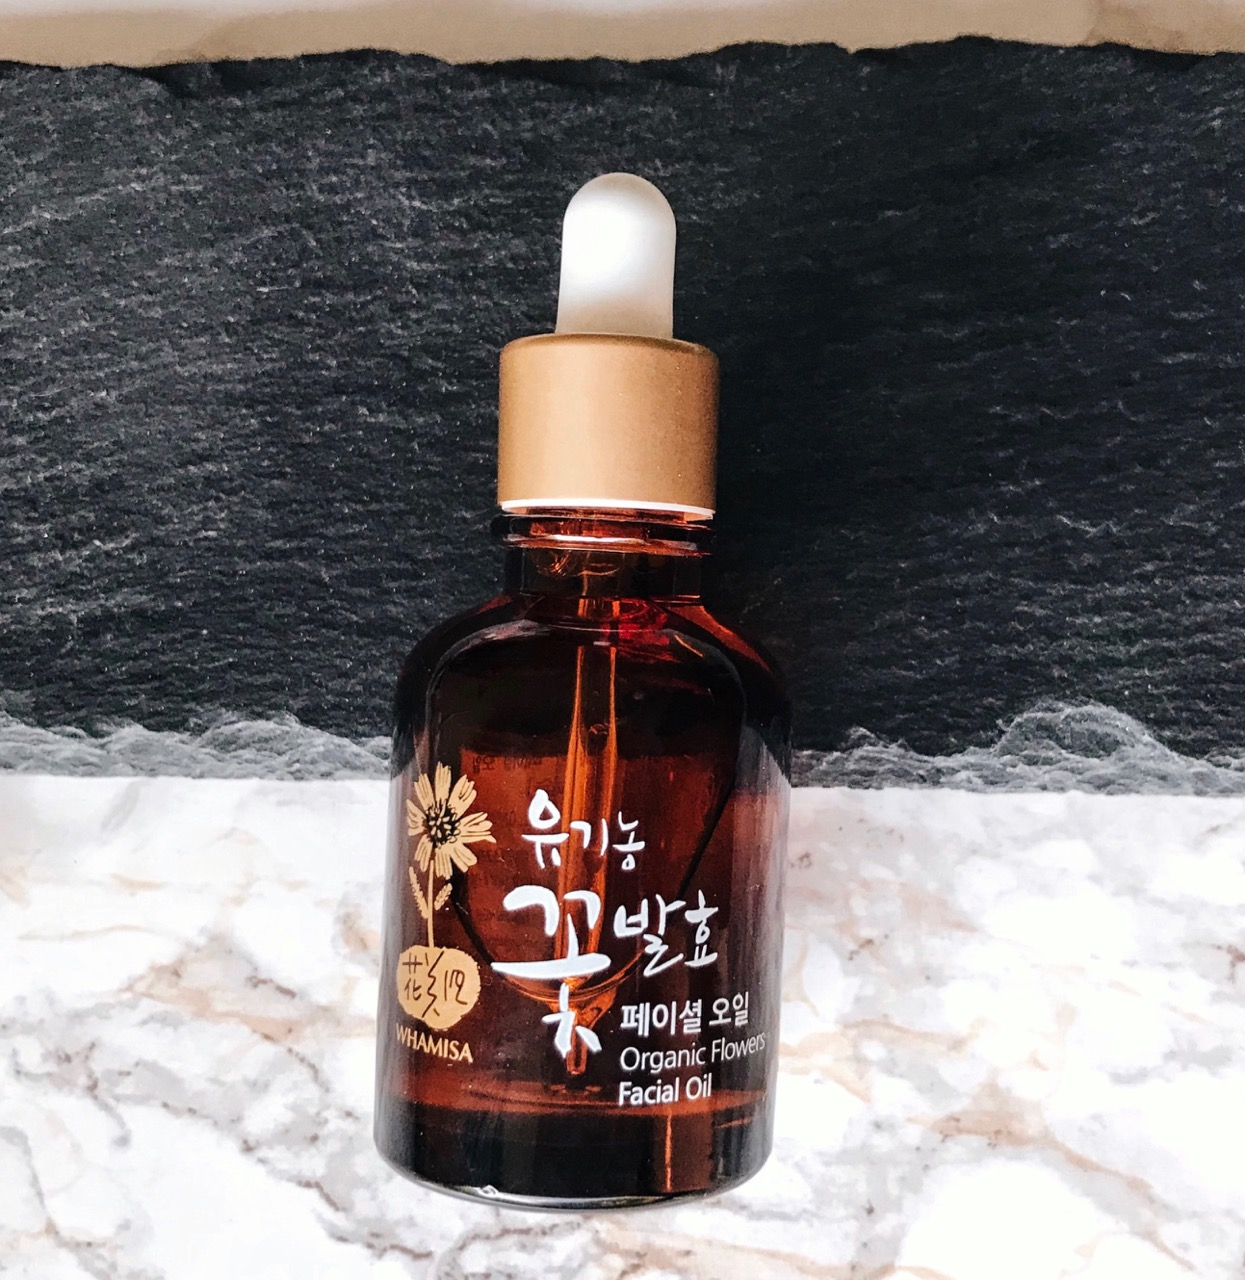 Whamisa Organic Flowers Facial Oil Review